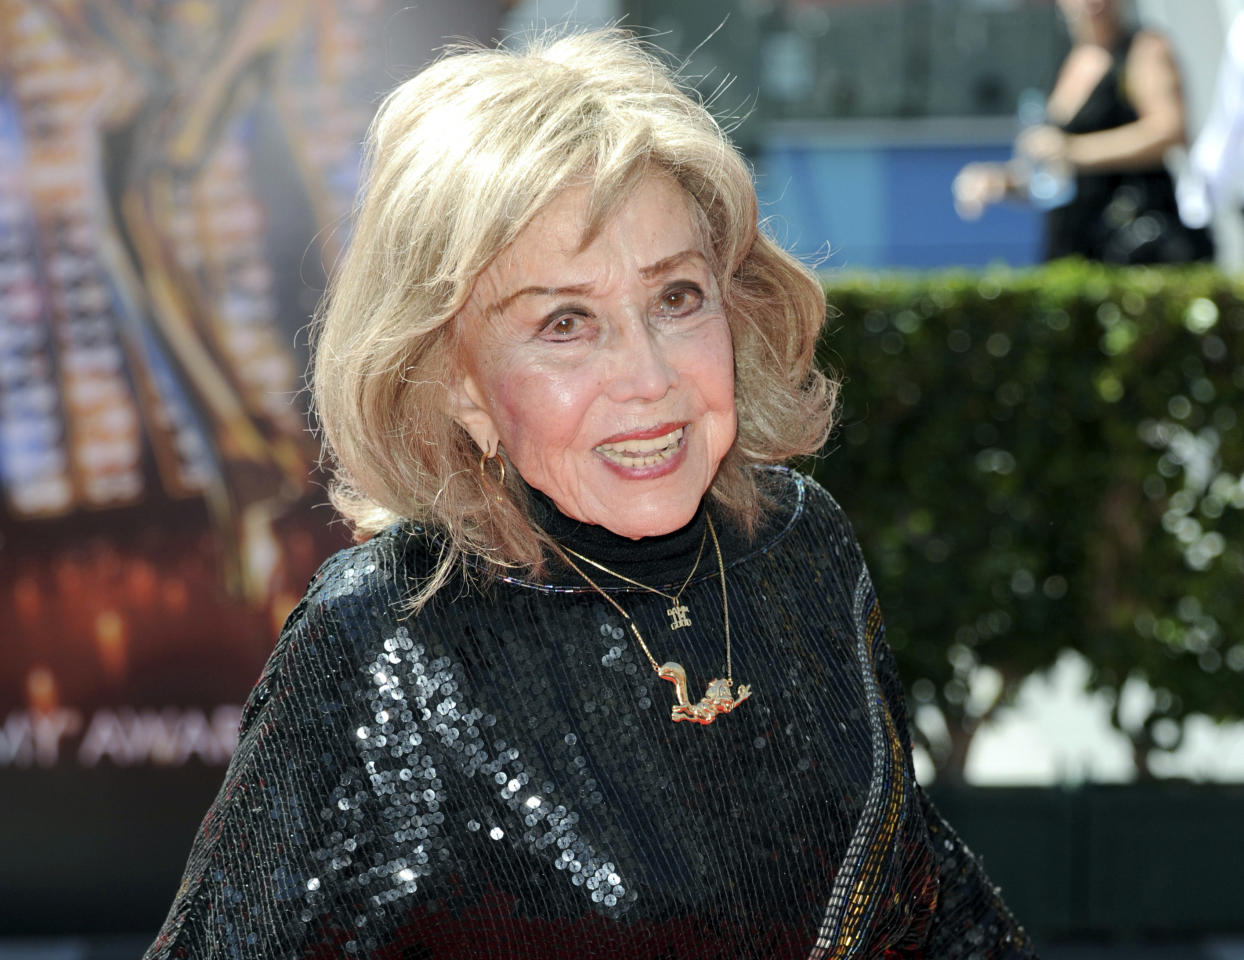 In this Sept. 15, 2013 file photo, June Foray arrives at the Primetime Creative Arts Emmy Awards at the then Nokia Theatre L.A. Live, in Los Angeles. Foray's niece, Robin Thaler, said Thursday, July 27, 2017, that Foray died at Wednesday in a Los Angeles hospital of cardiac arrest. She was 99. (Photo by Richard Shotwell/Invision/AP, File)